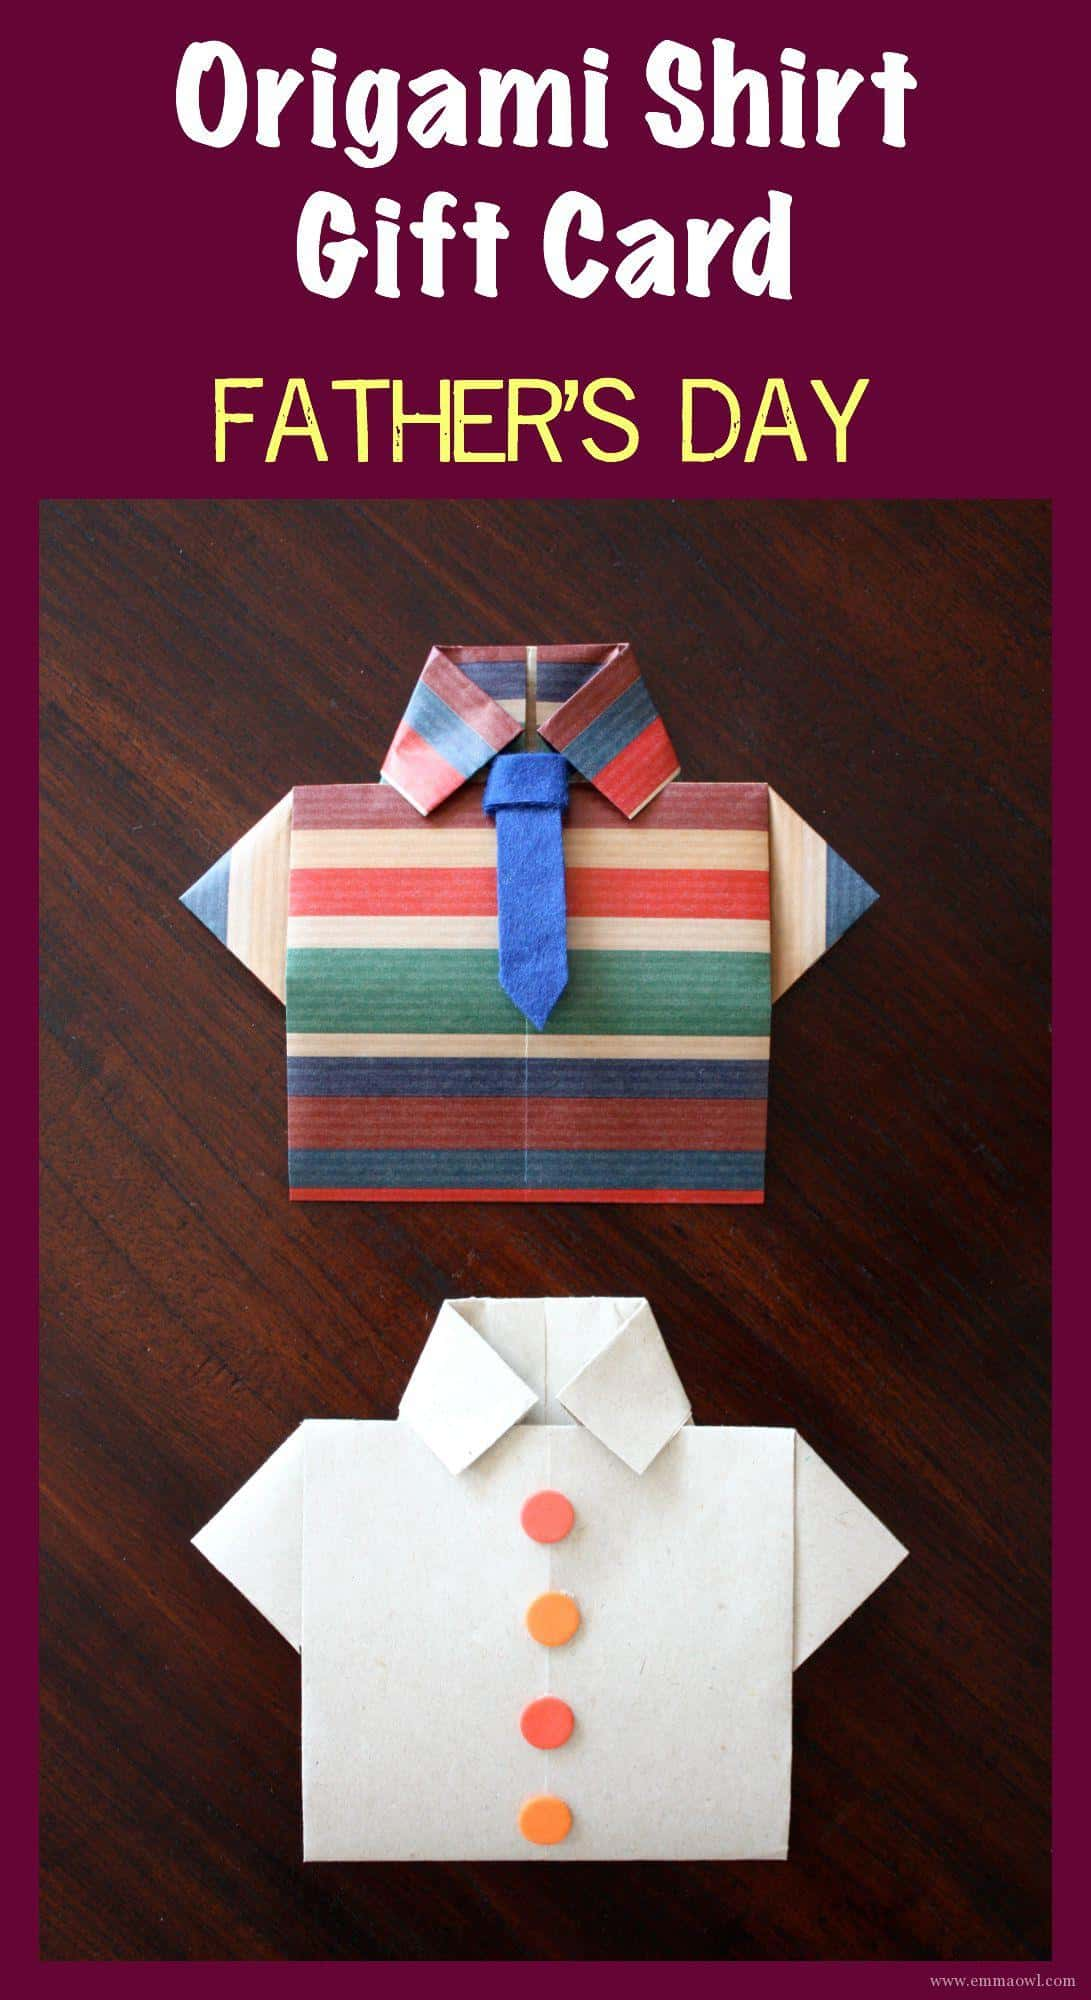 How to fold an Origami Shirt : howto | 2000x1091